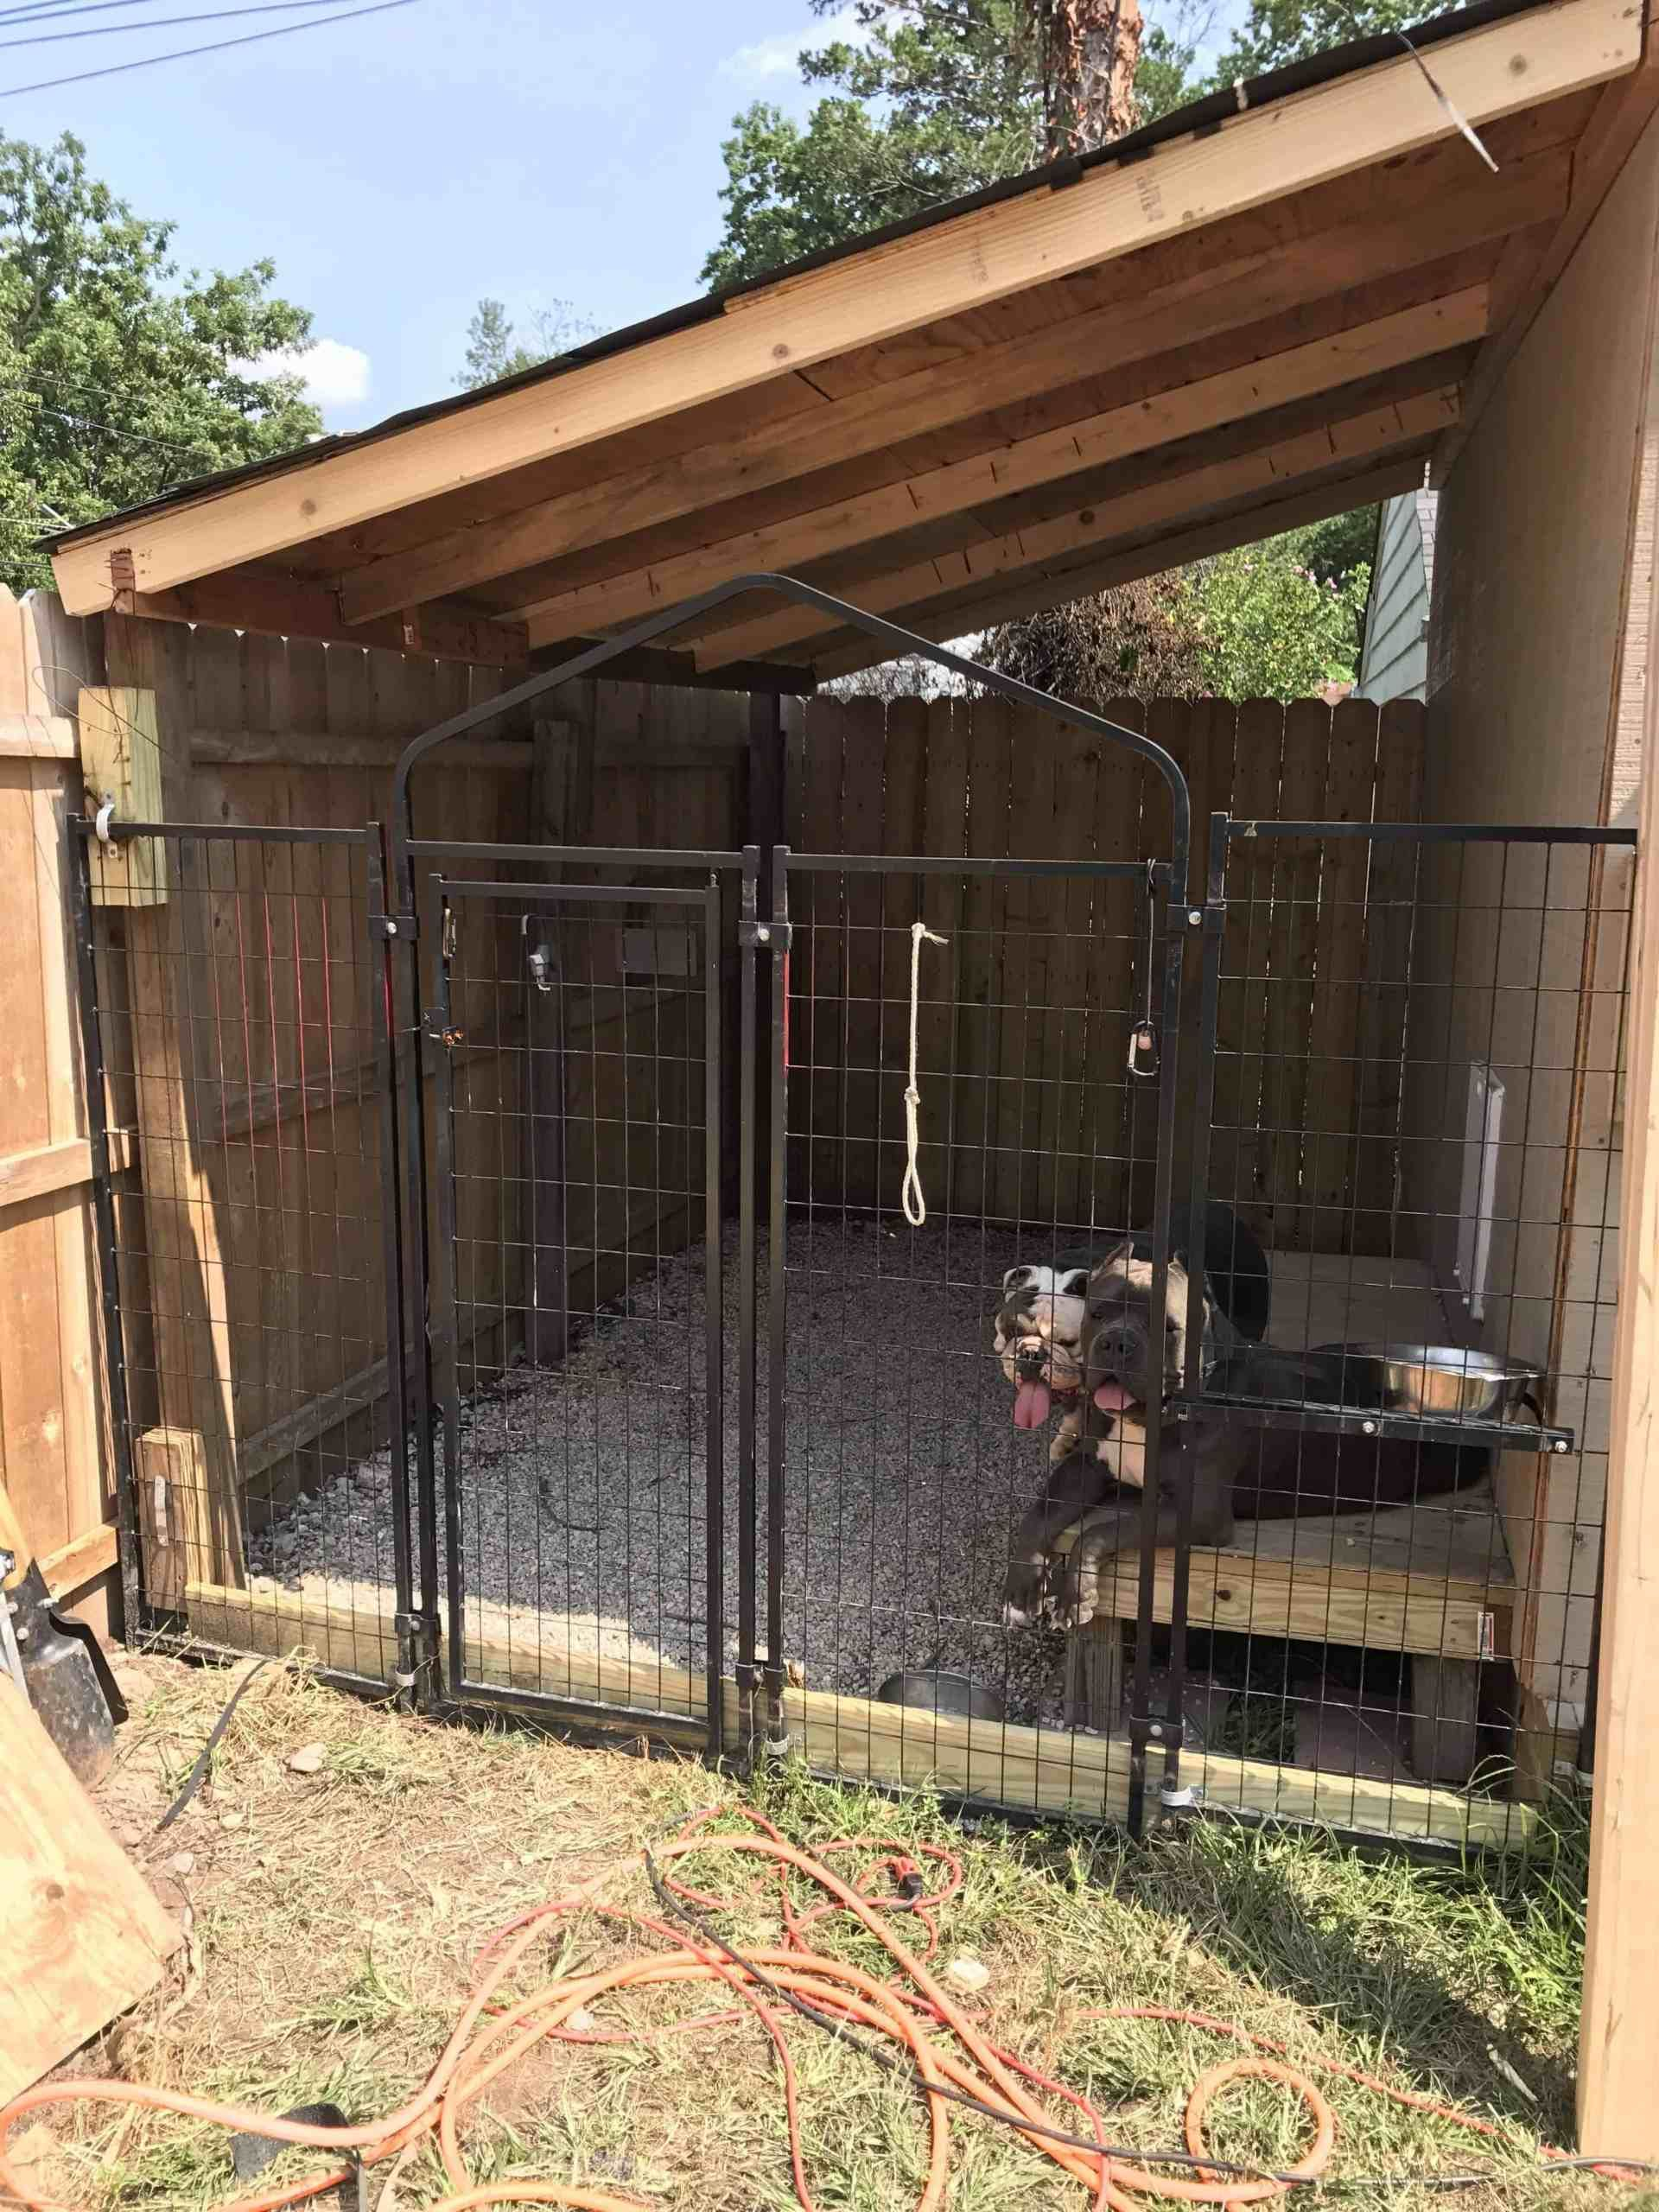 30 Clever Designs Of How To Build Backyard Dog Kennel Ideas Simphome Dog Kennel Outdoor Dog House Diy Diy Dog Kennel Outdoor dog house diy